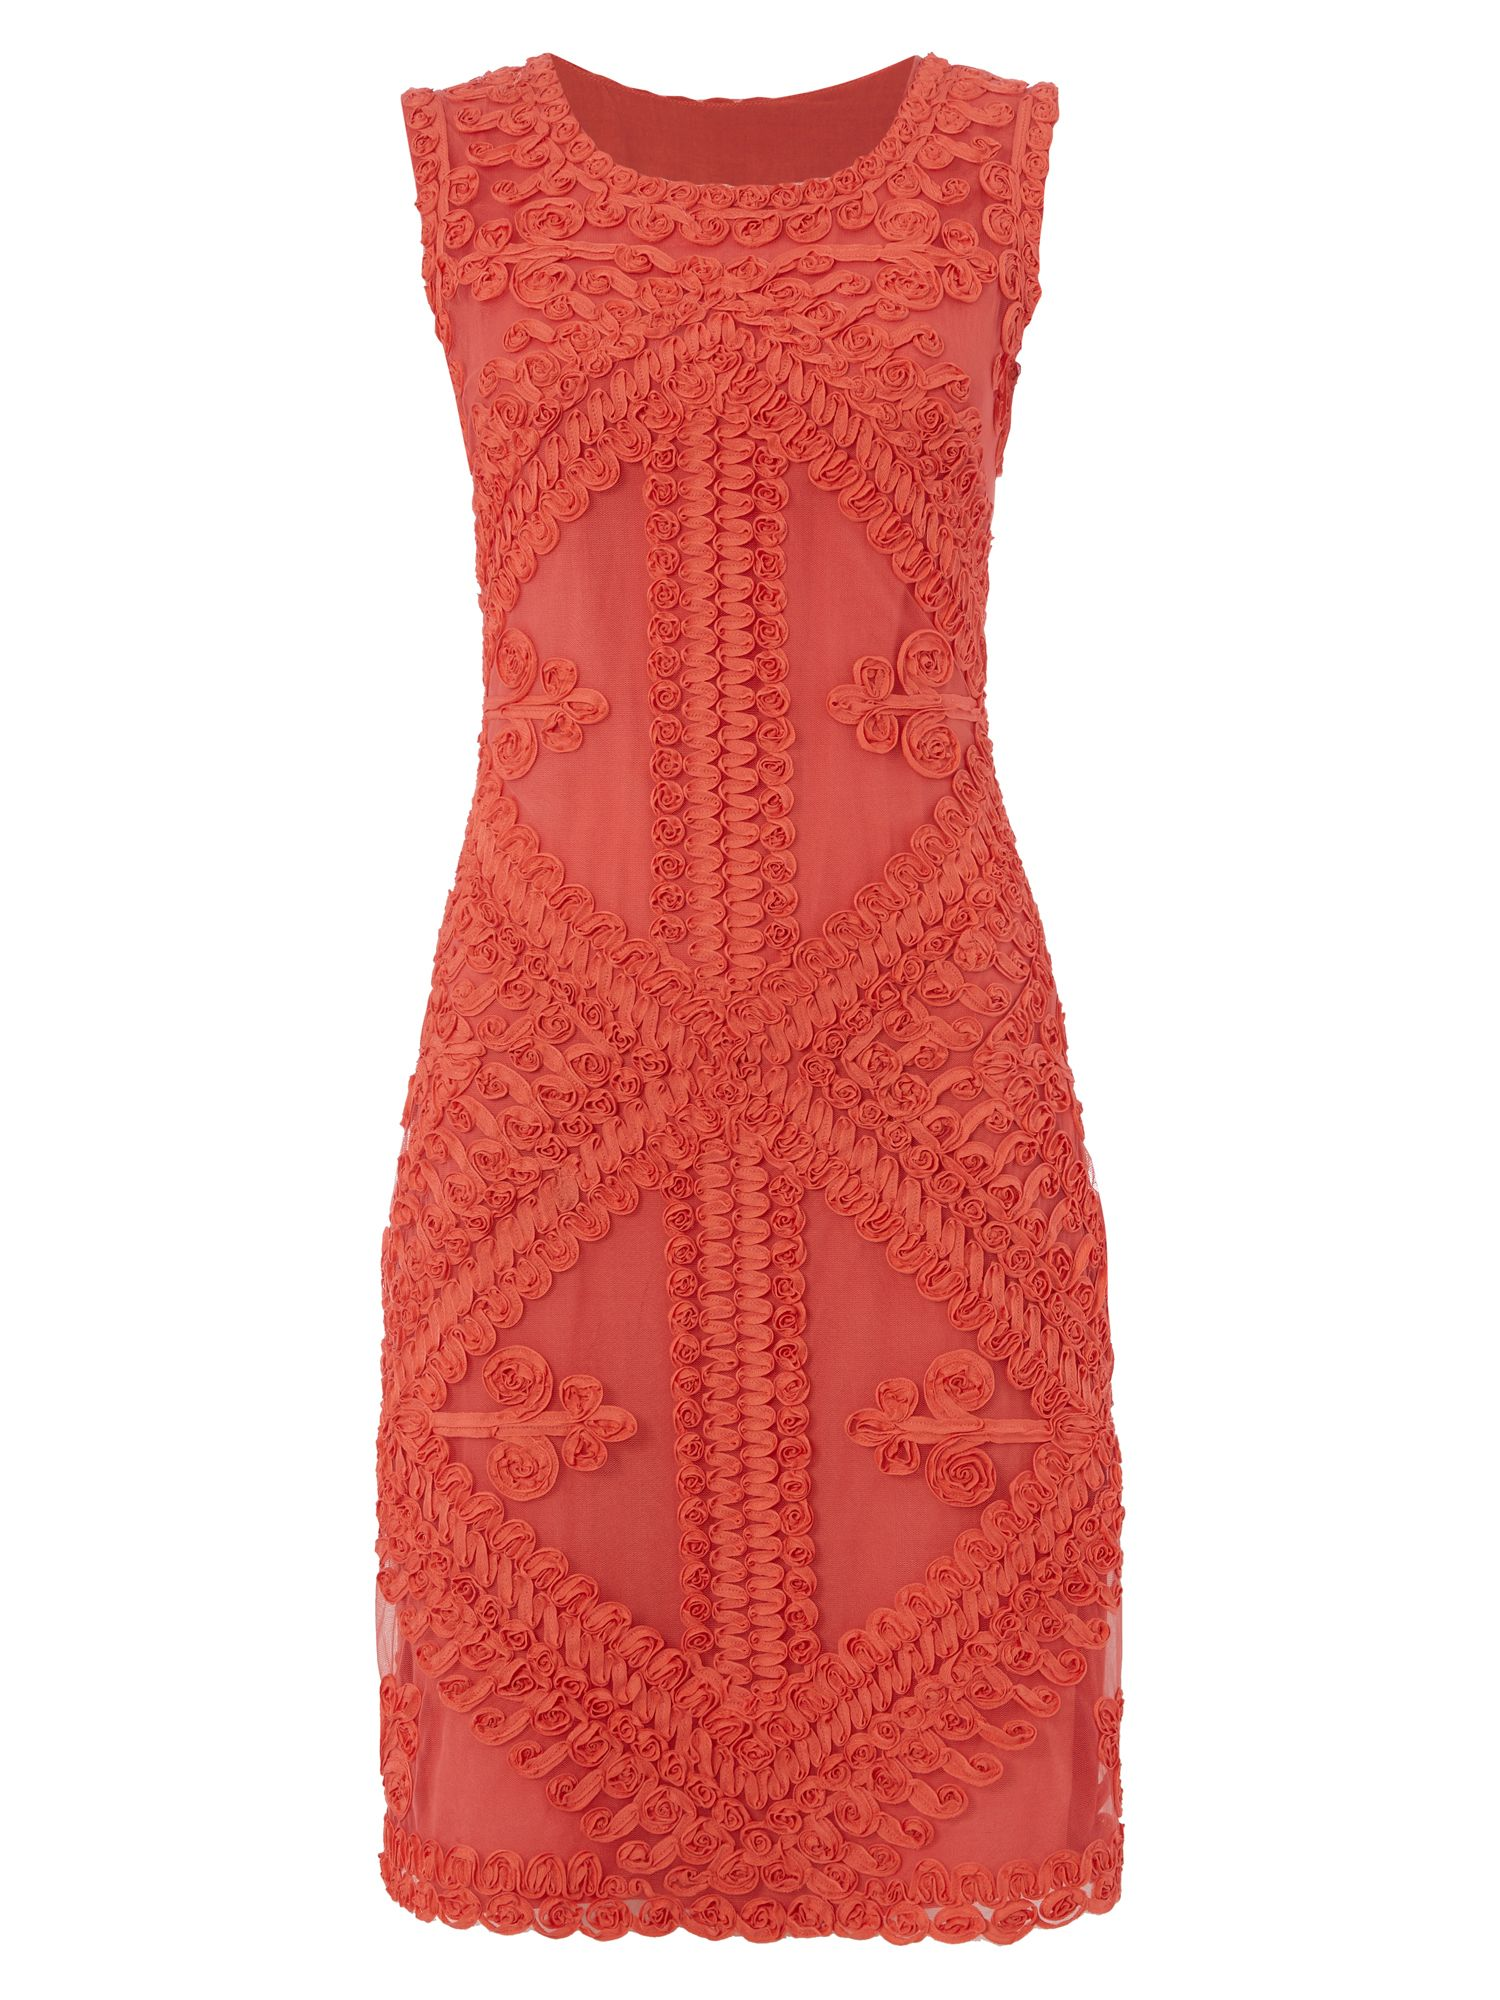 RAISHMA Coral Geometric Tapework Dress, Coral